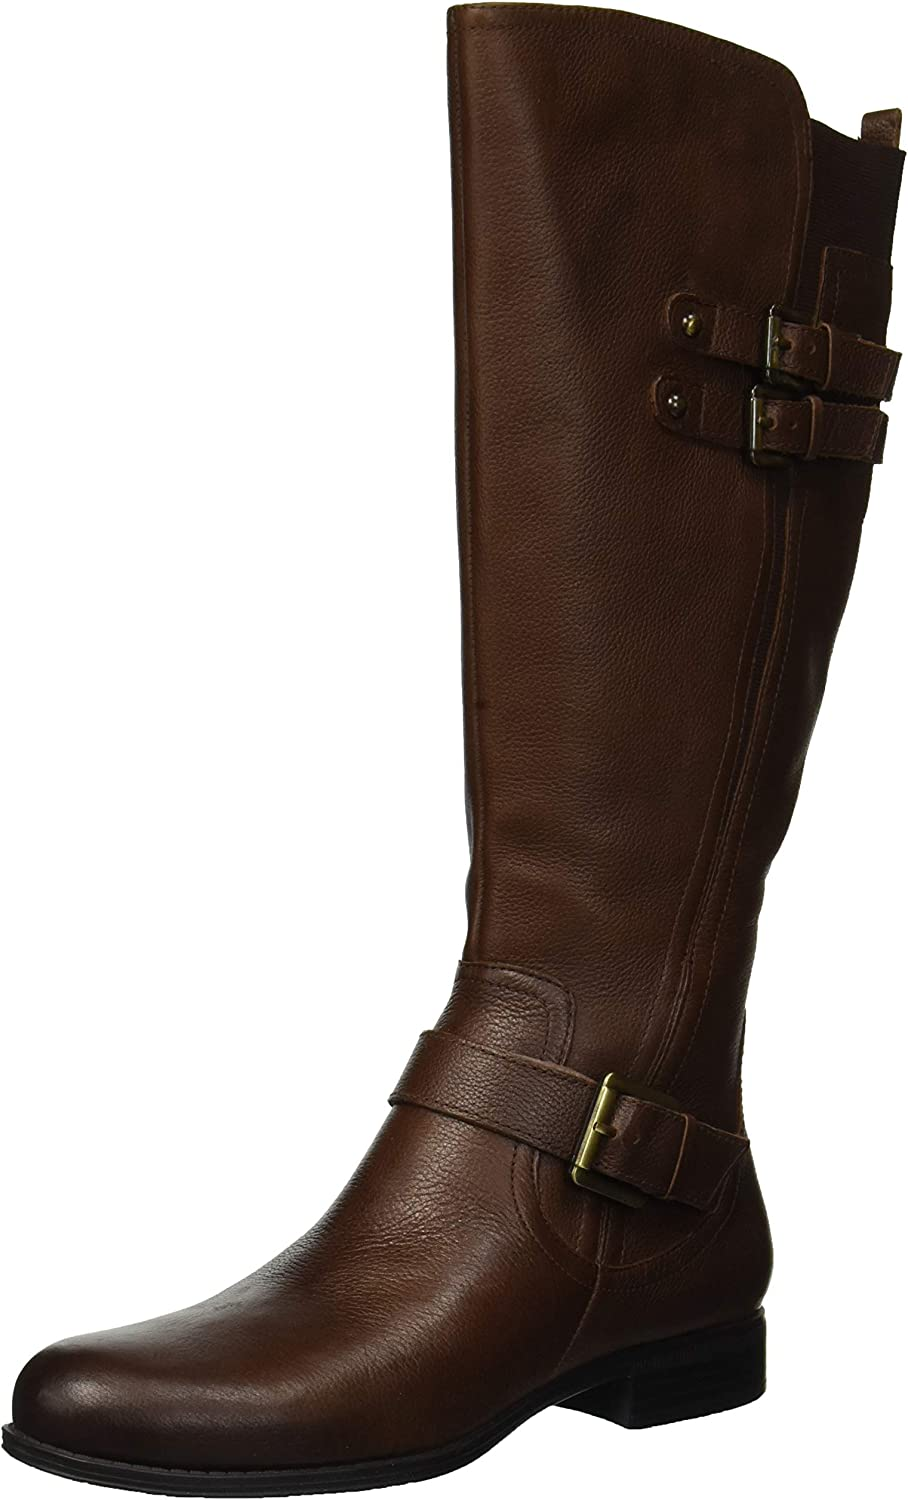 Naturalizer Women's Max 82% OFF Jessie Knee High Mail order Boot